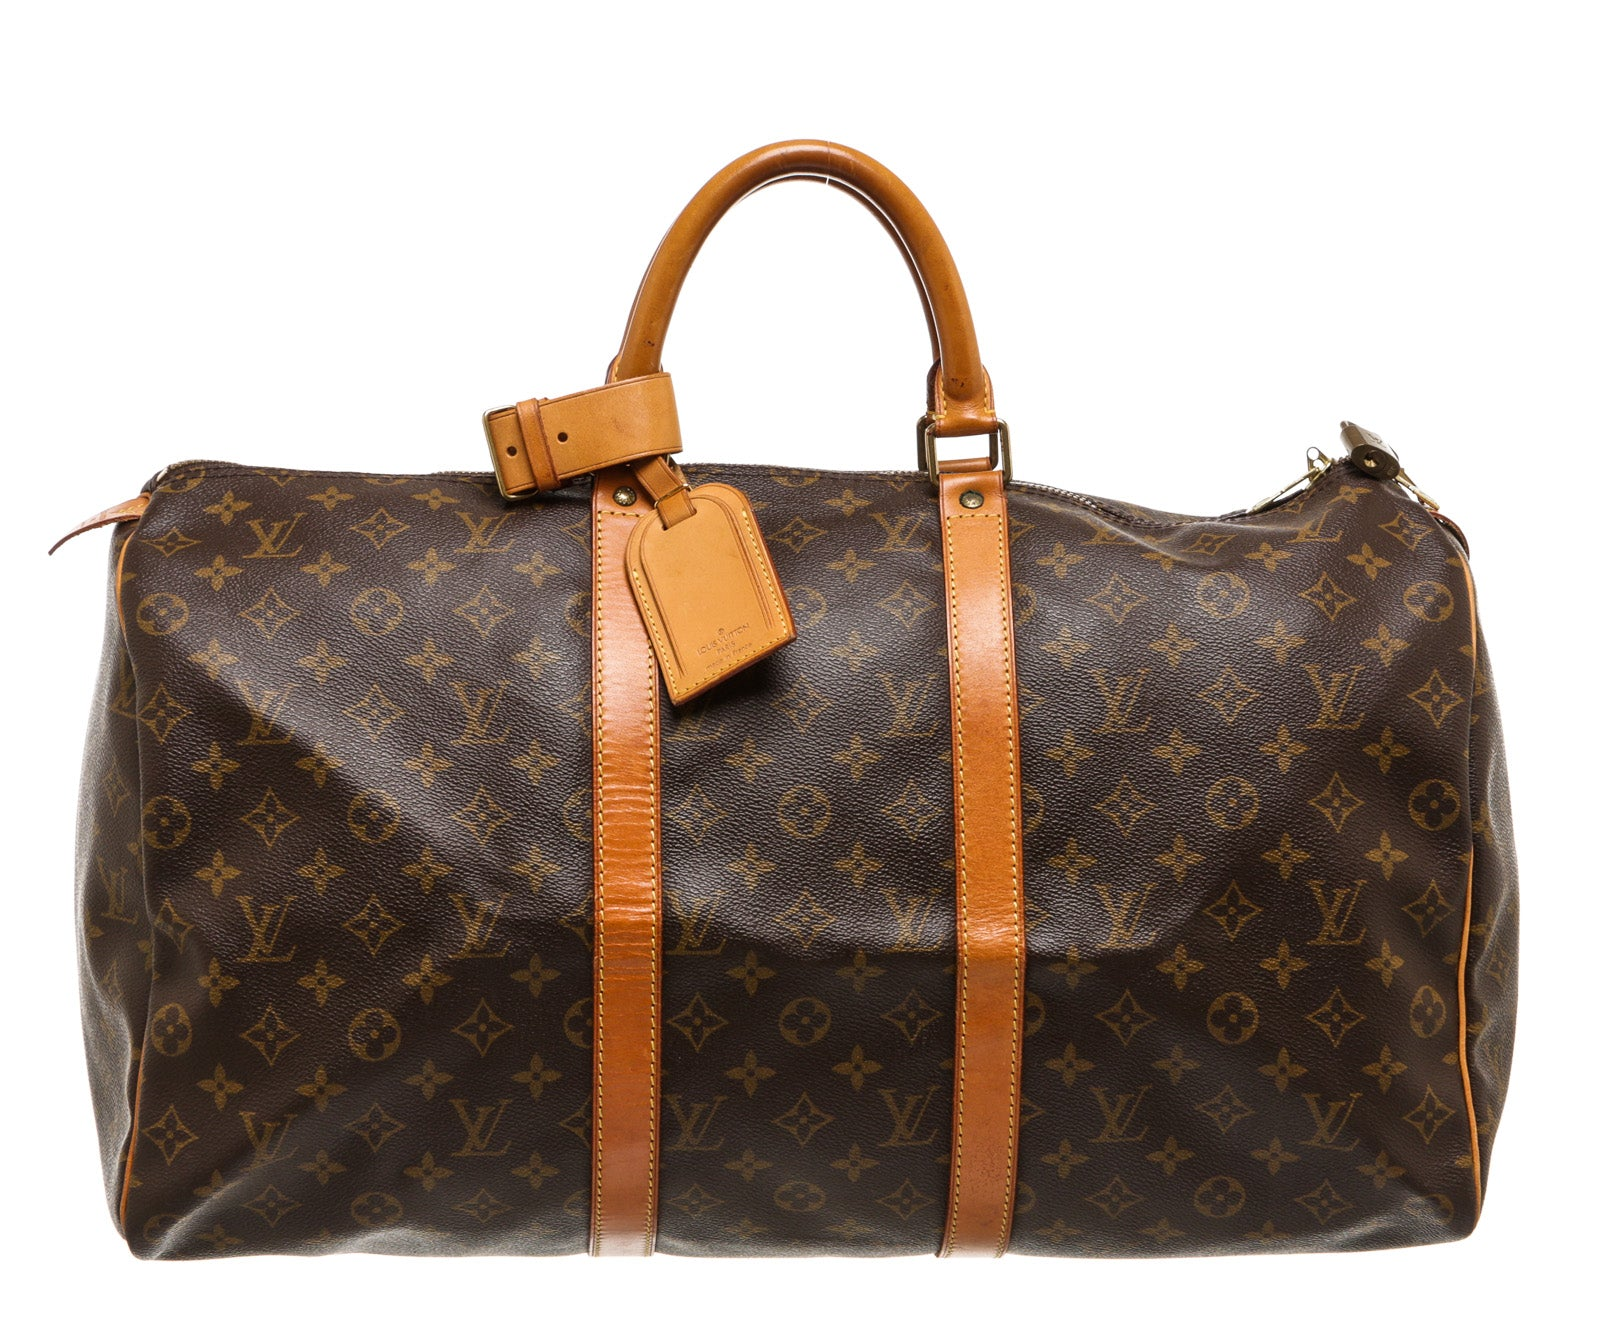 Louis Vuitton Monogram Canvas Keepall 50 Duffel Bag